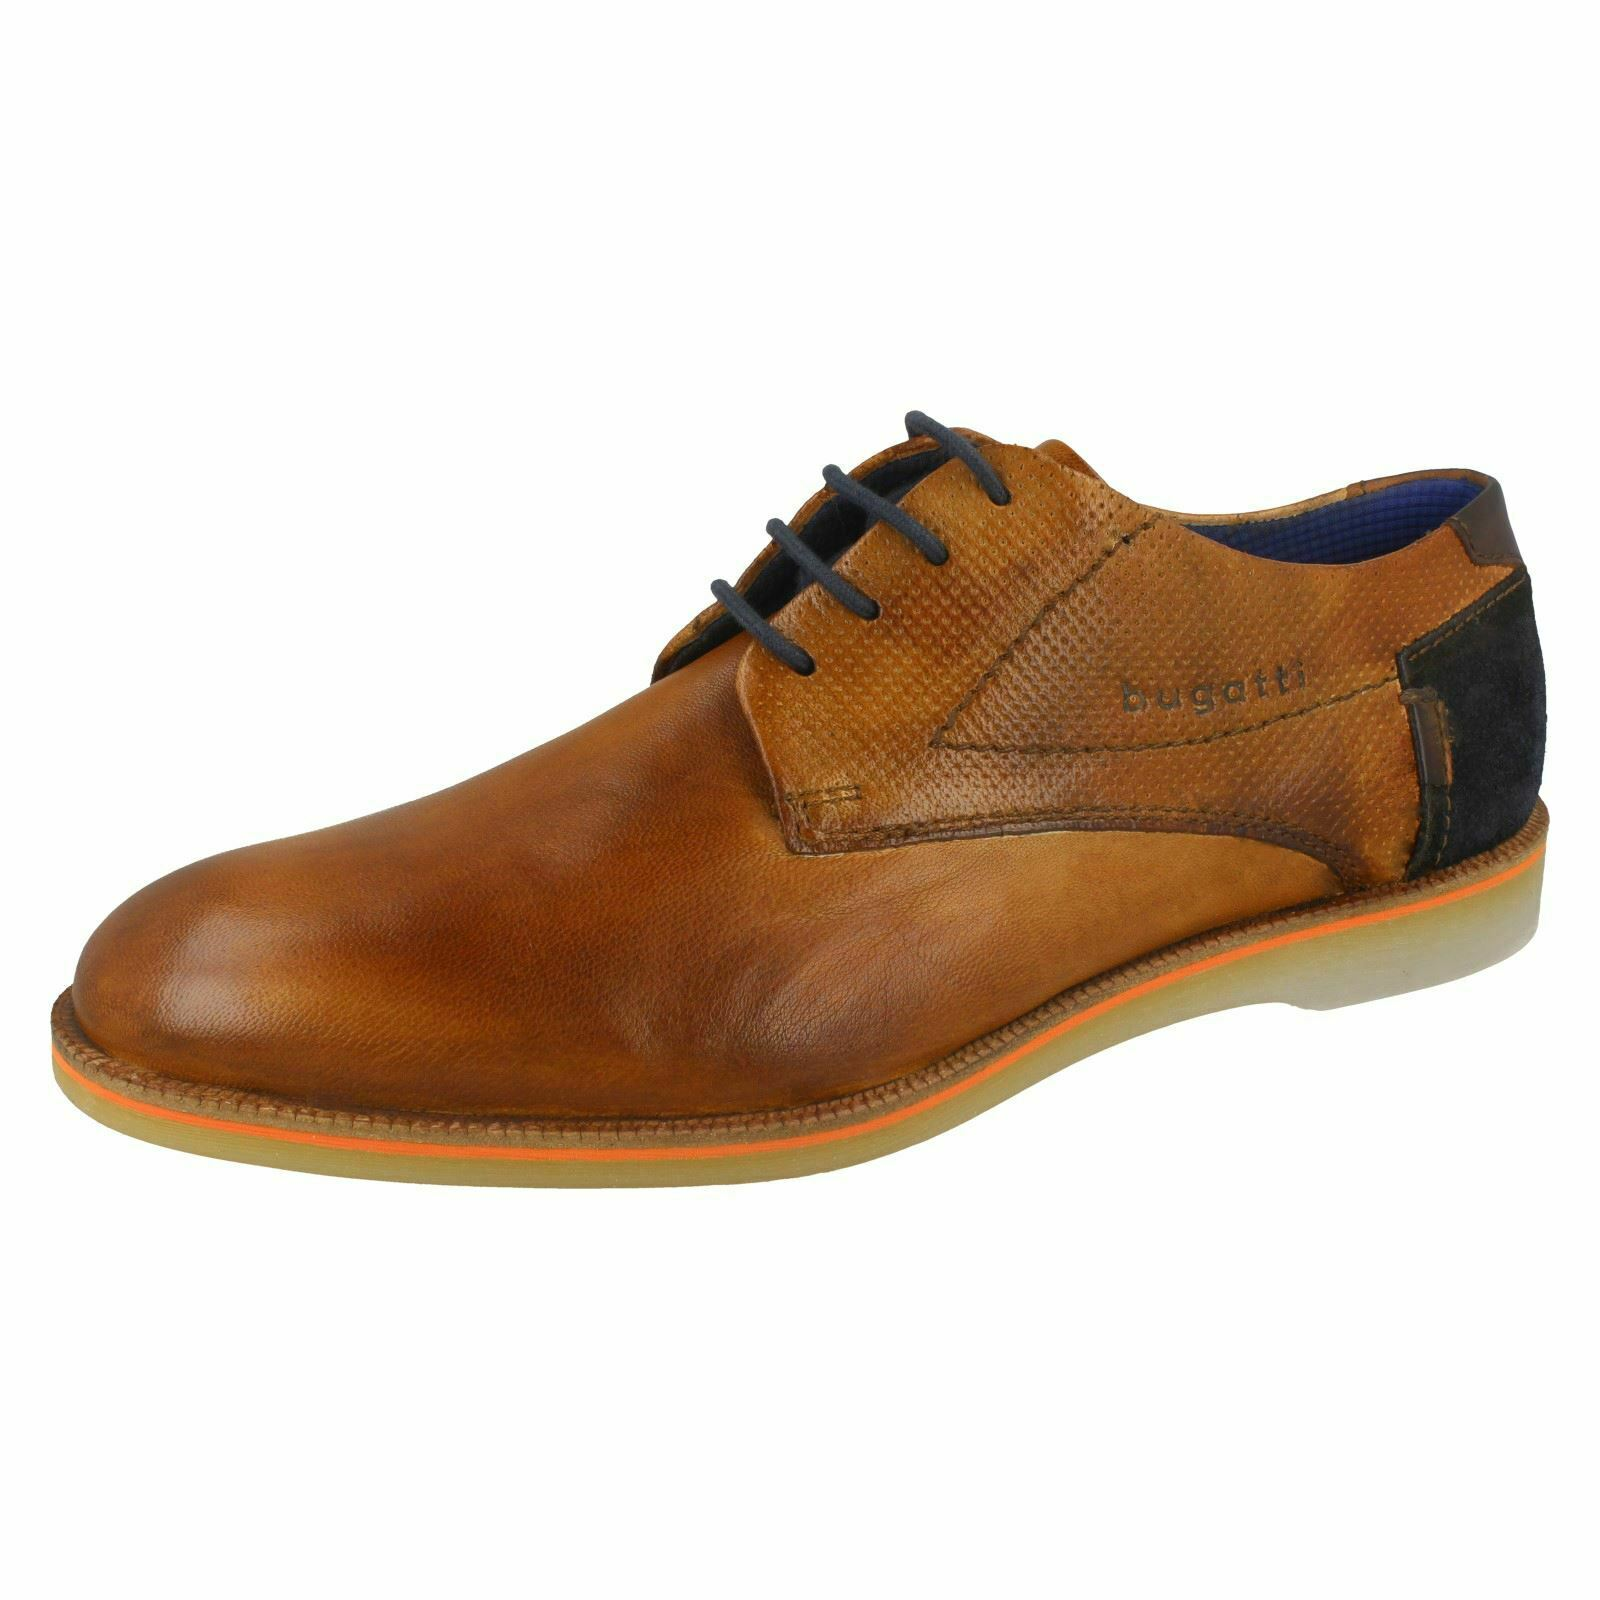 Mens Bugatti Stylish Lace Up shoes 312-64702-4100